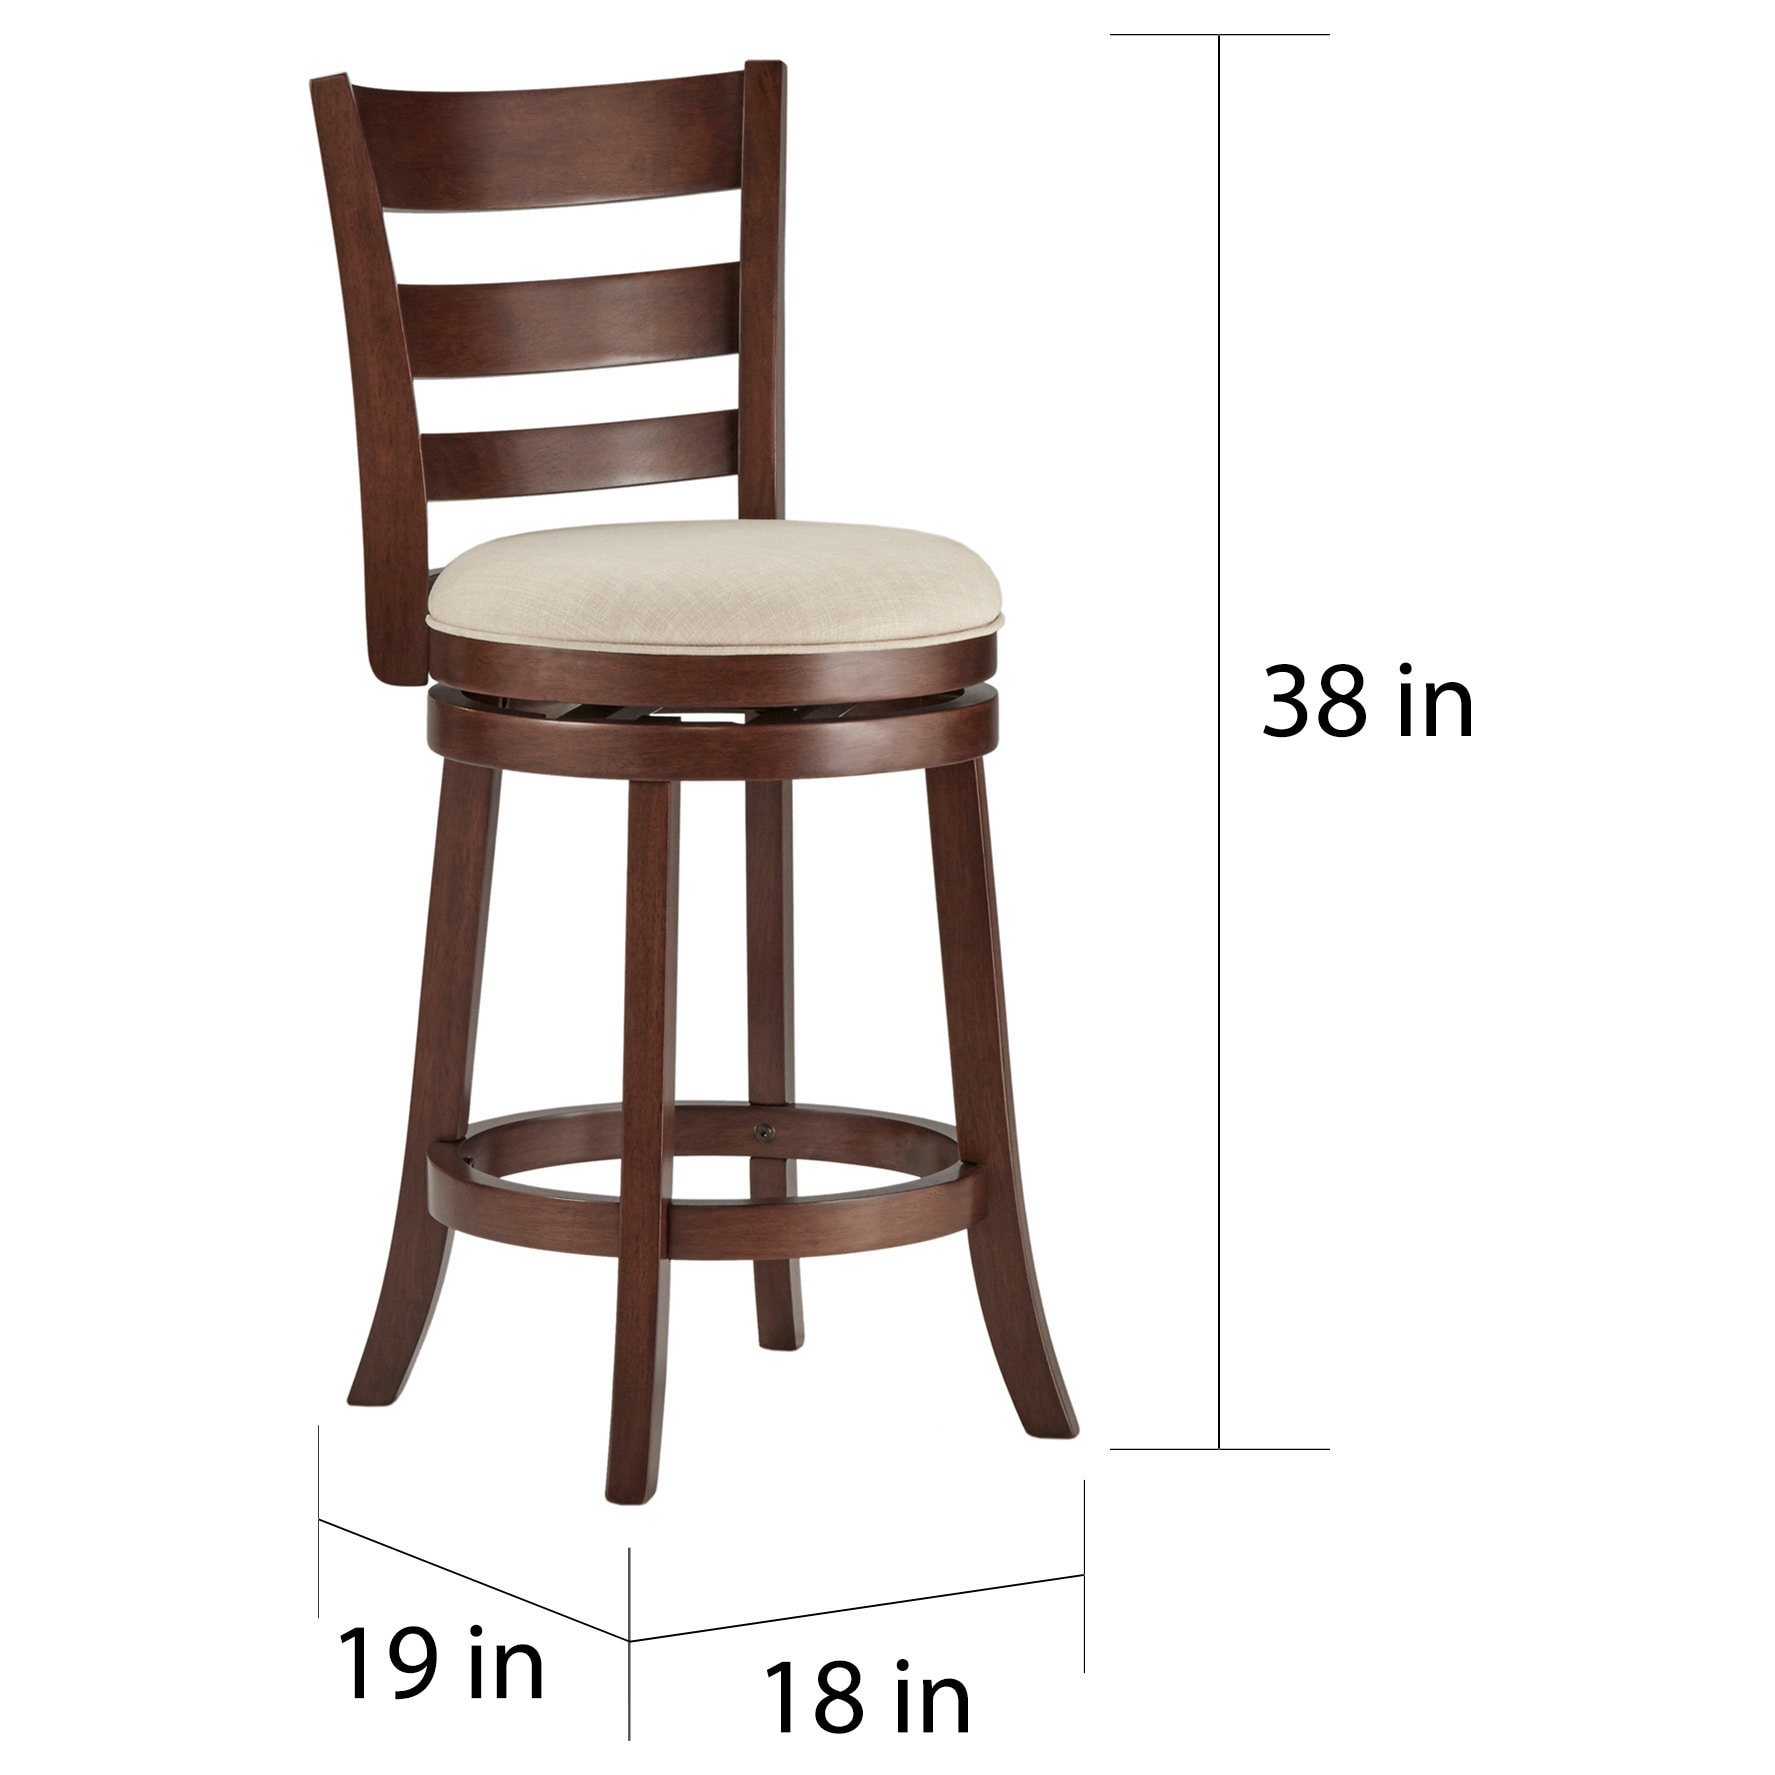 Verona Linen Ladder Back Swivel 24-inch High Back Counter Height Stool by  iNSPIRE Q Classic - Free Shipping Today - Overstock.com - 13431196